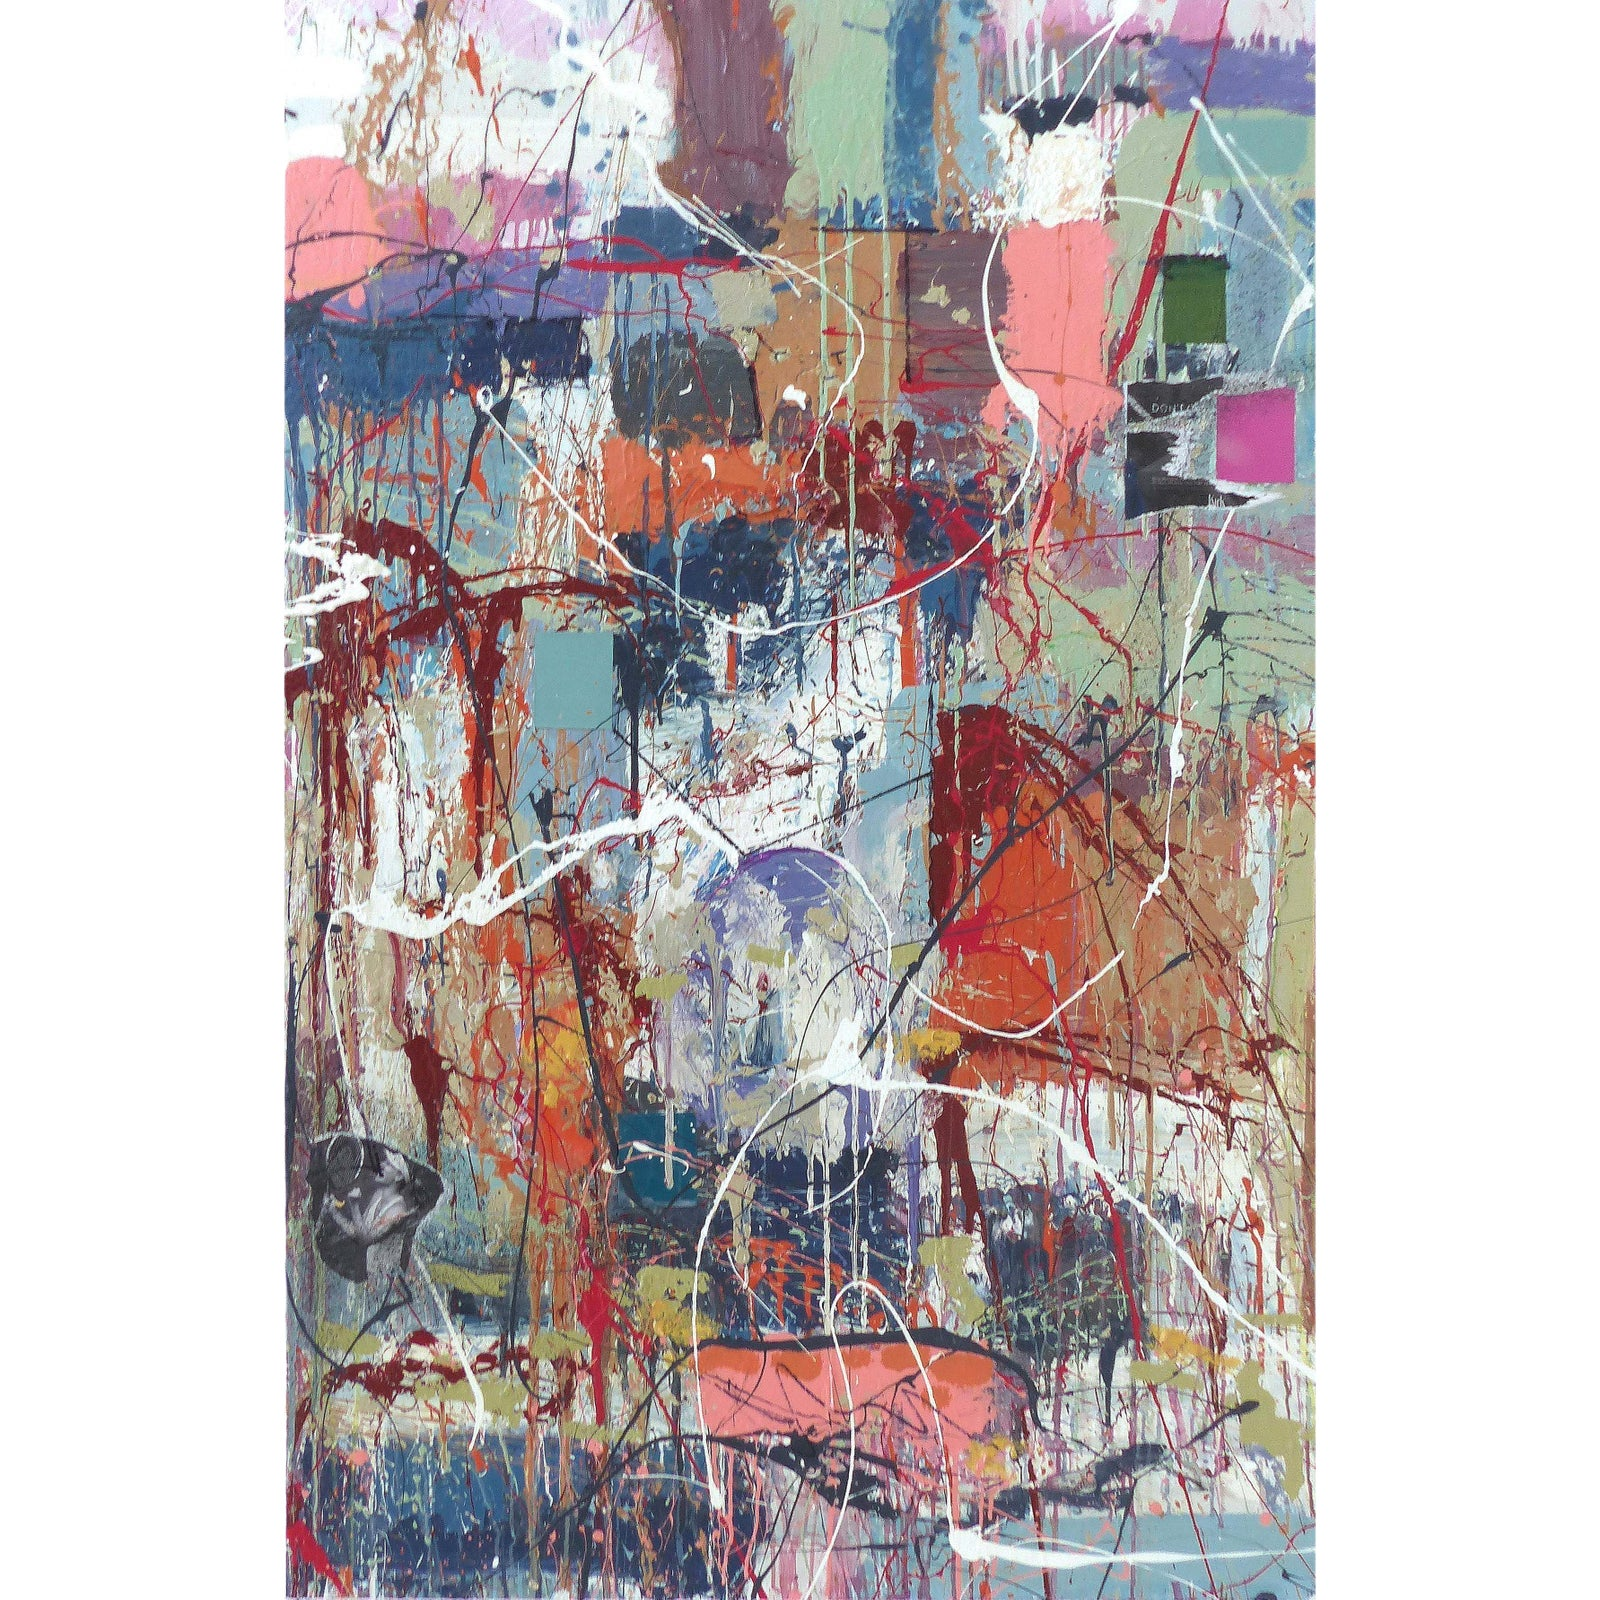 Abstract Painting by William Phelps Montgomery 'Don't Scream' Mixed Media,  2019